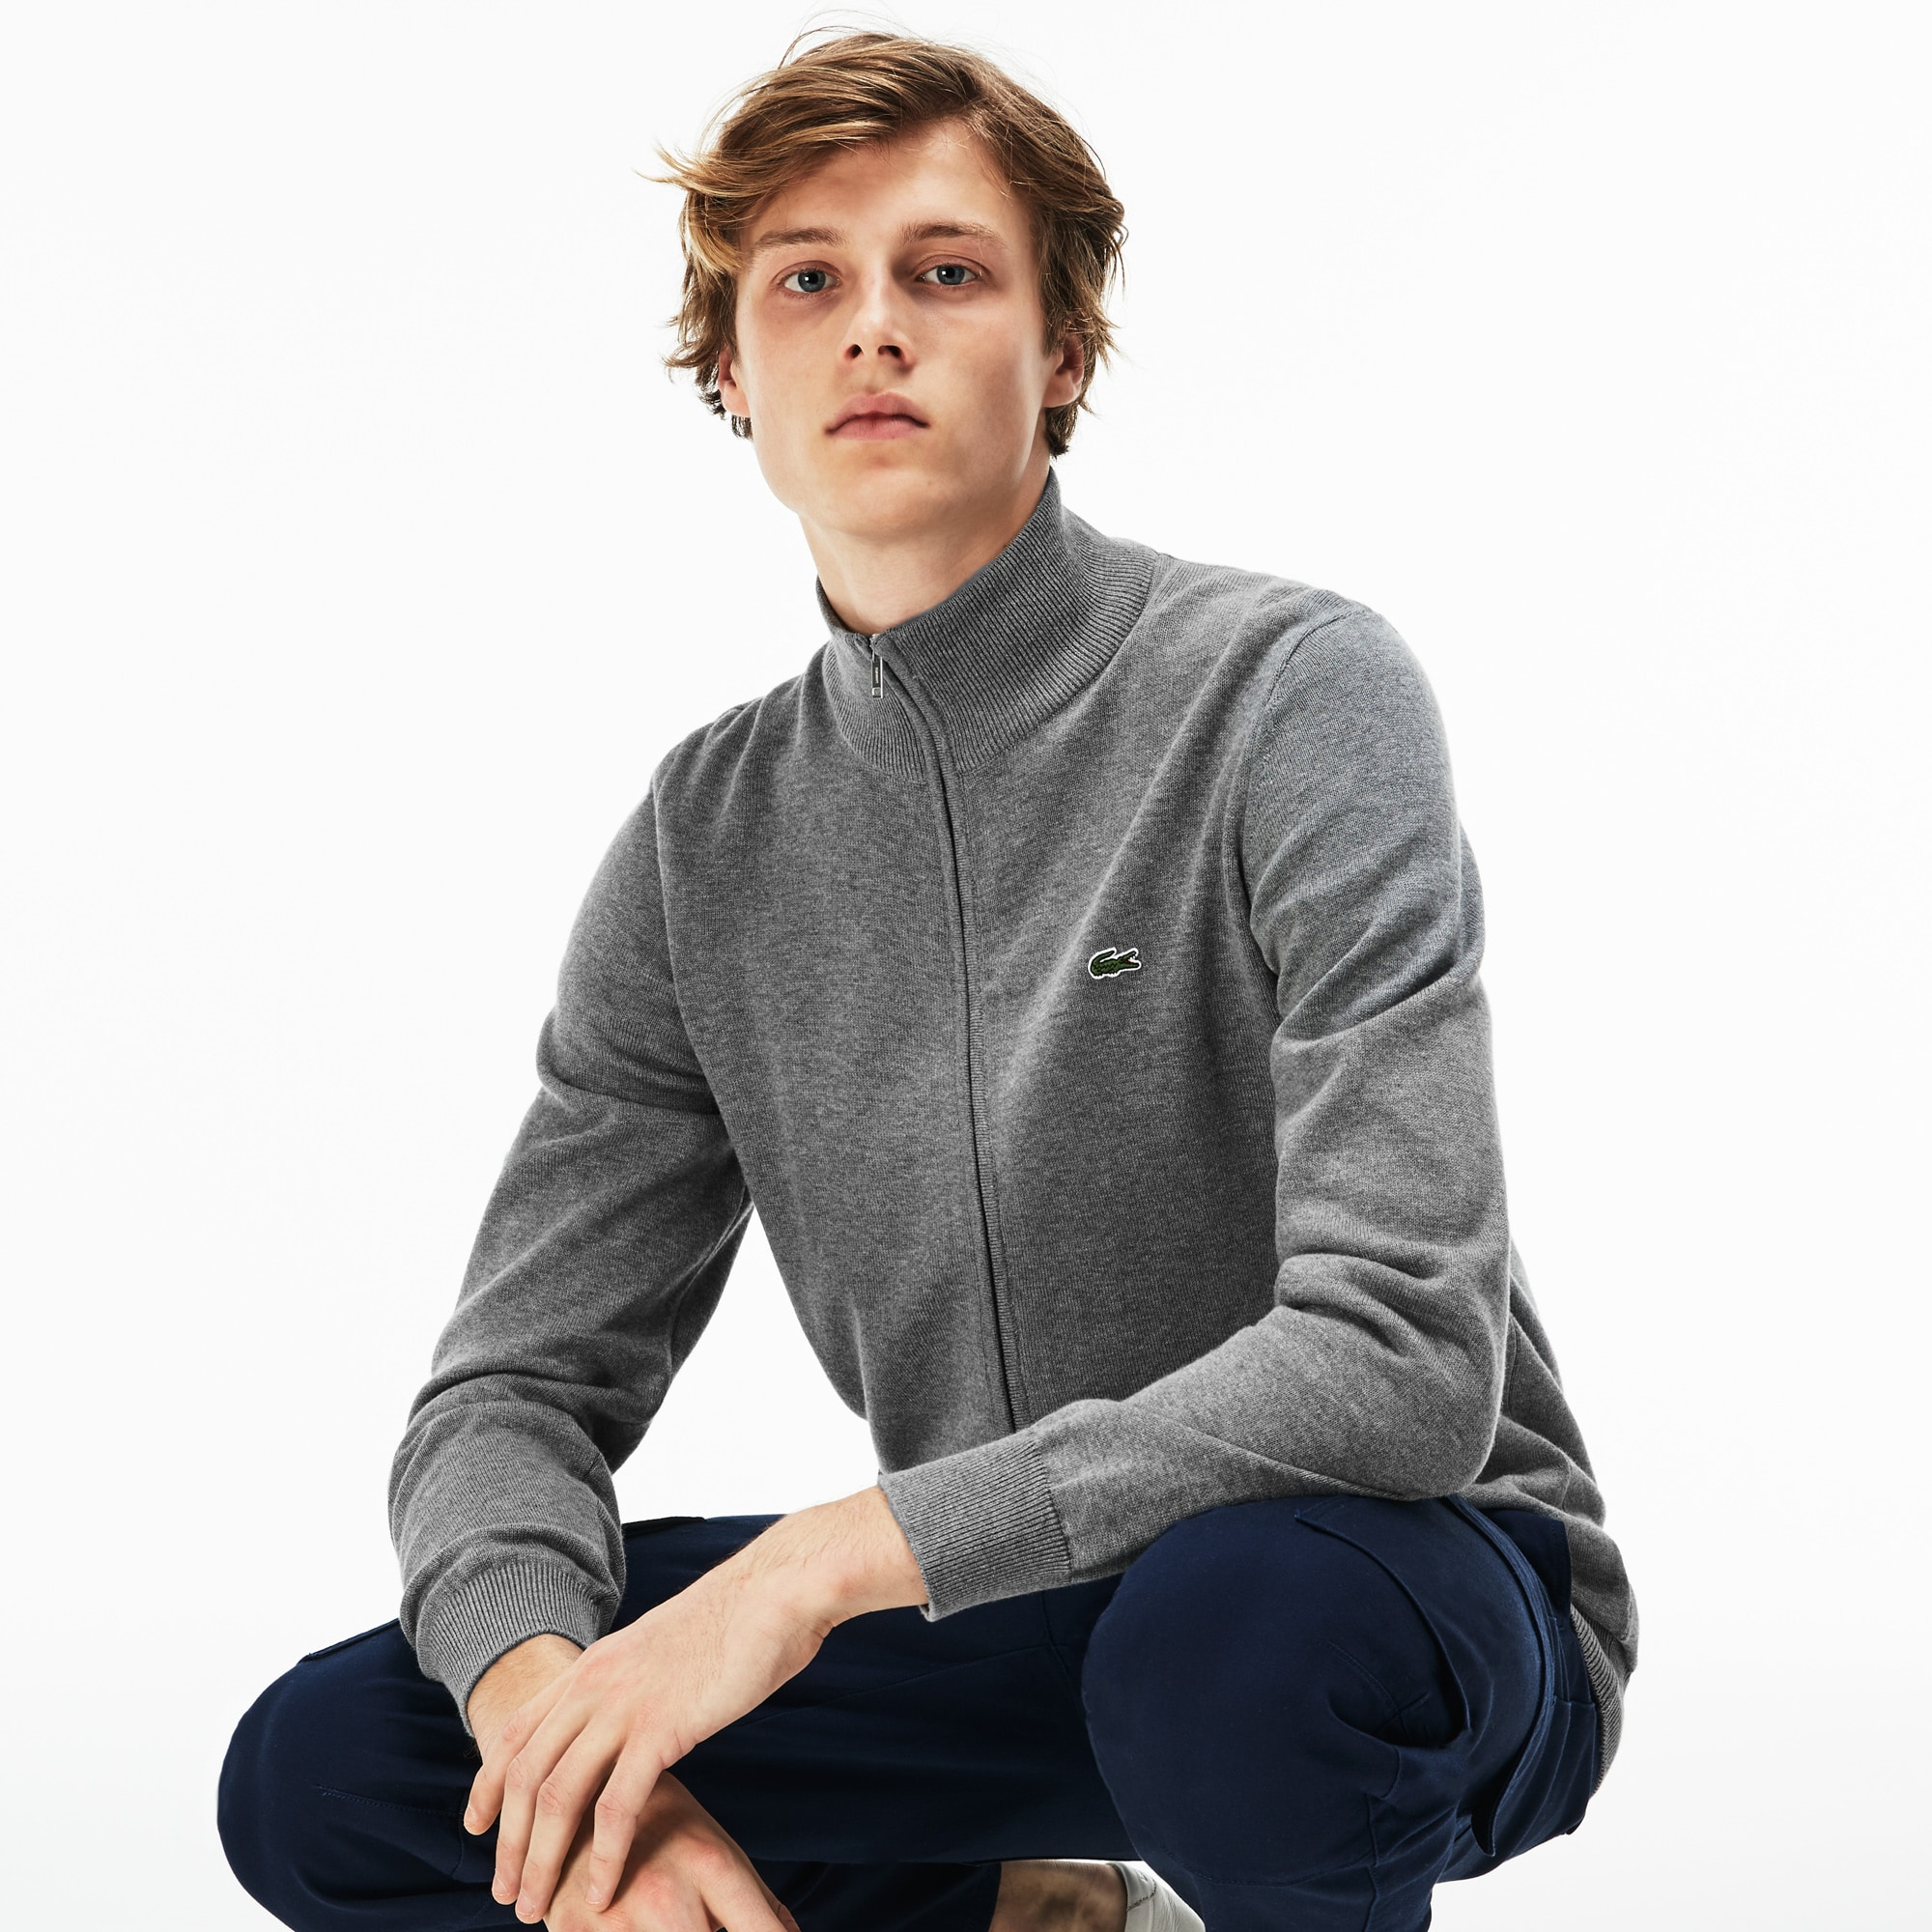 Men's Zip Stand-Up Collar Cotton Jersey Cardigan